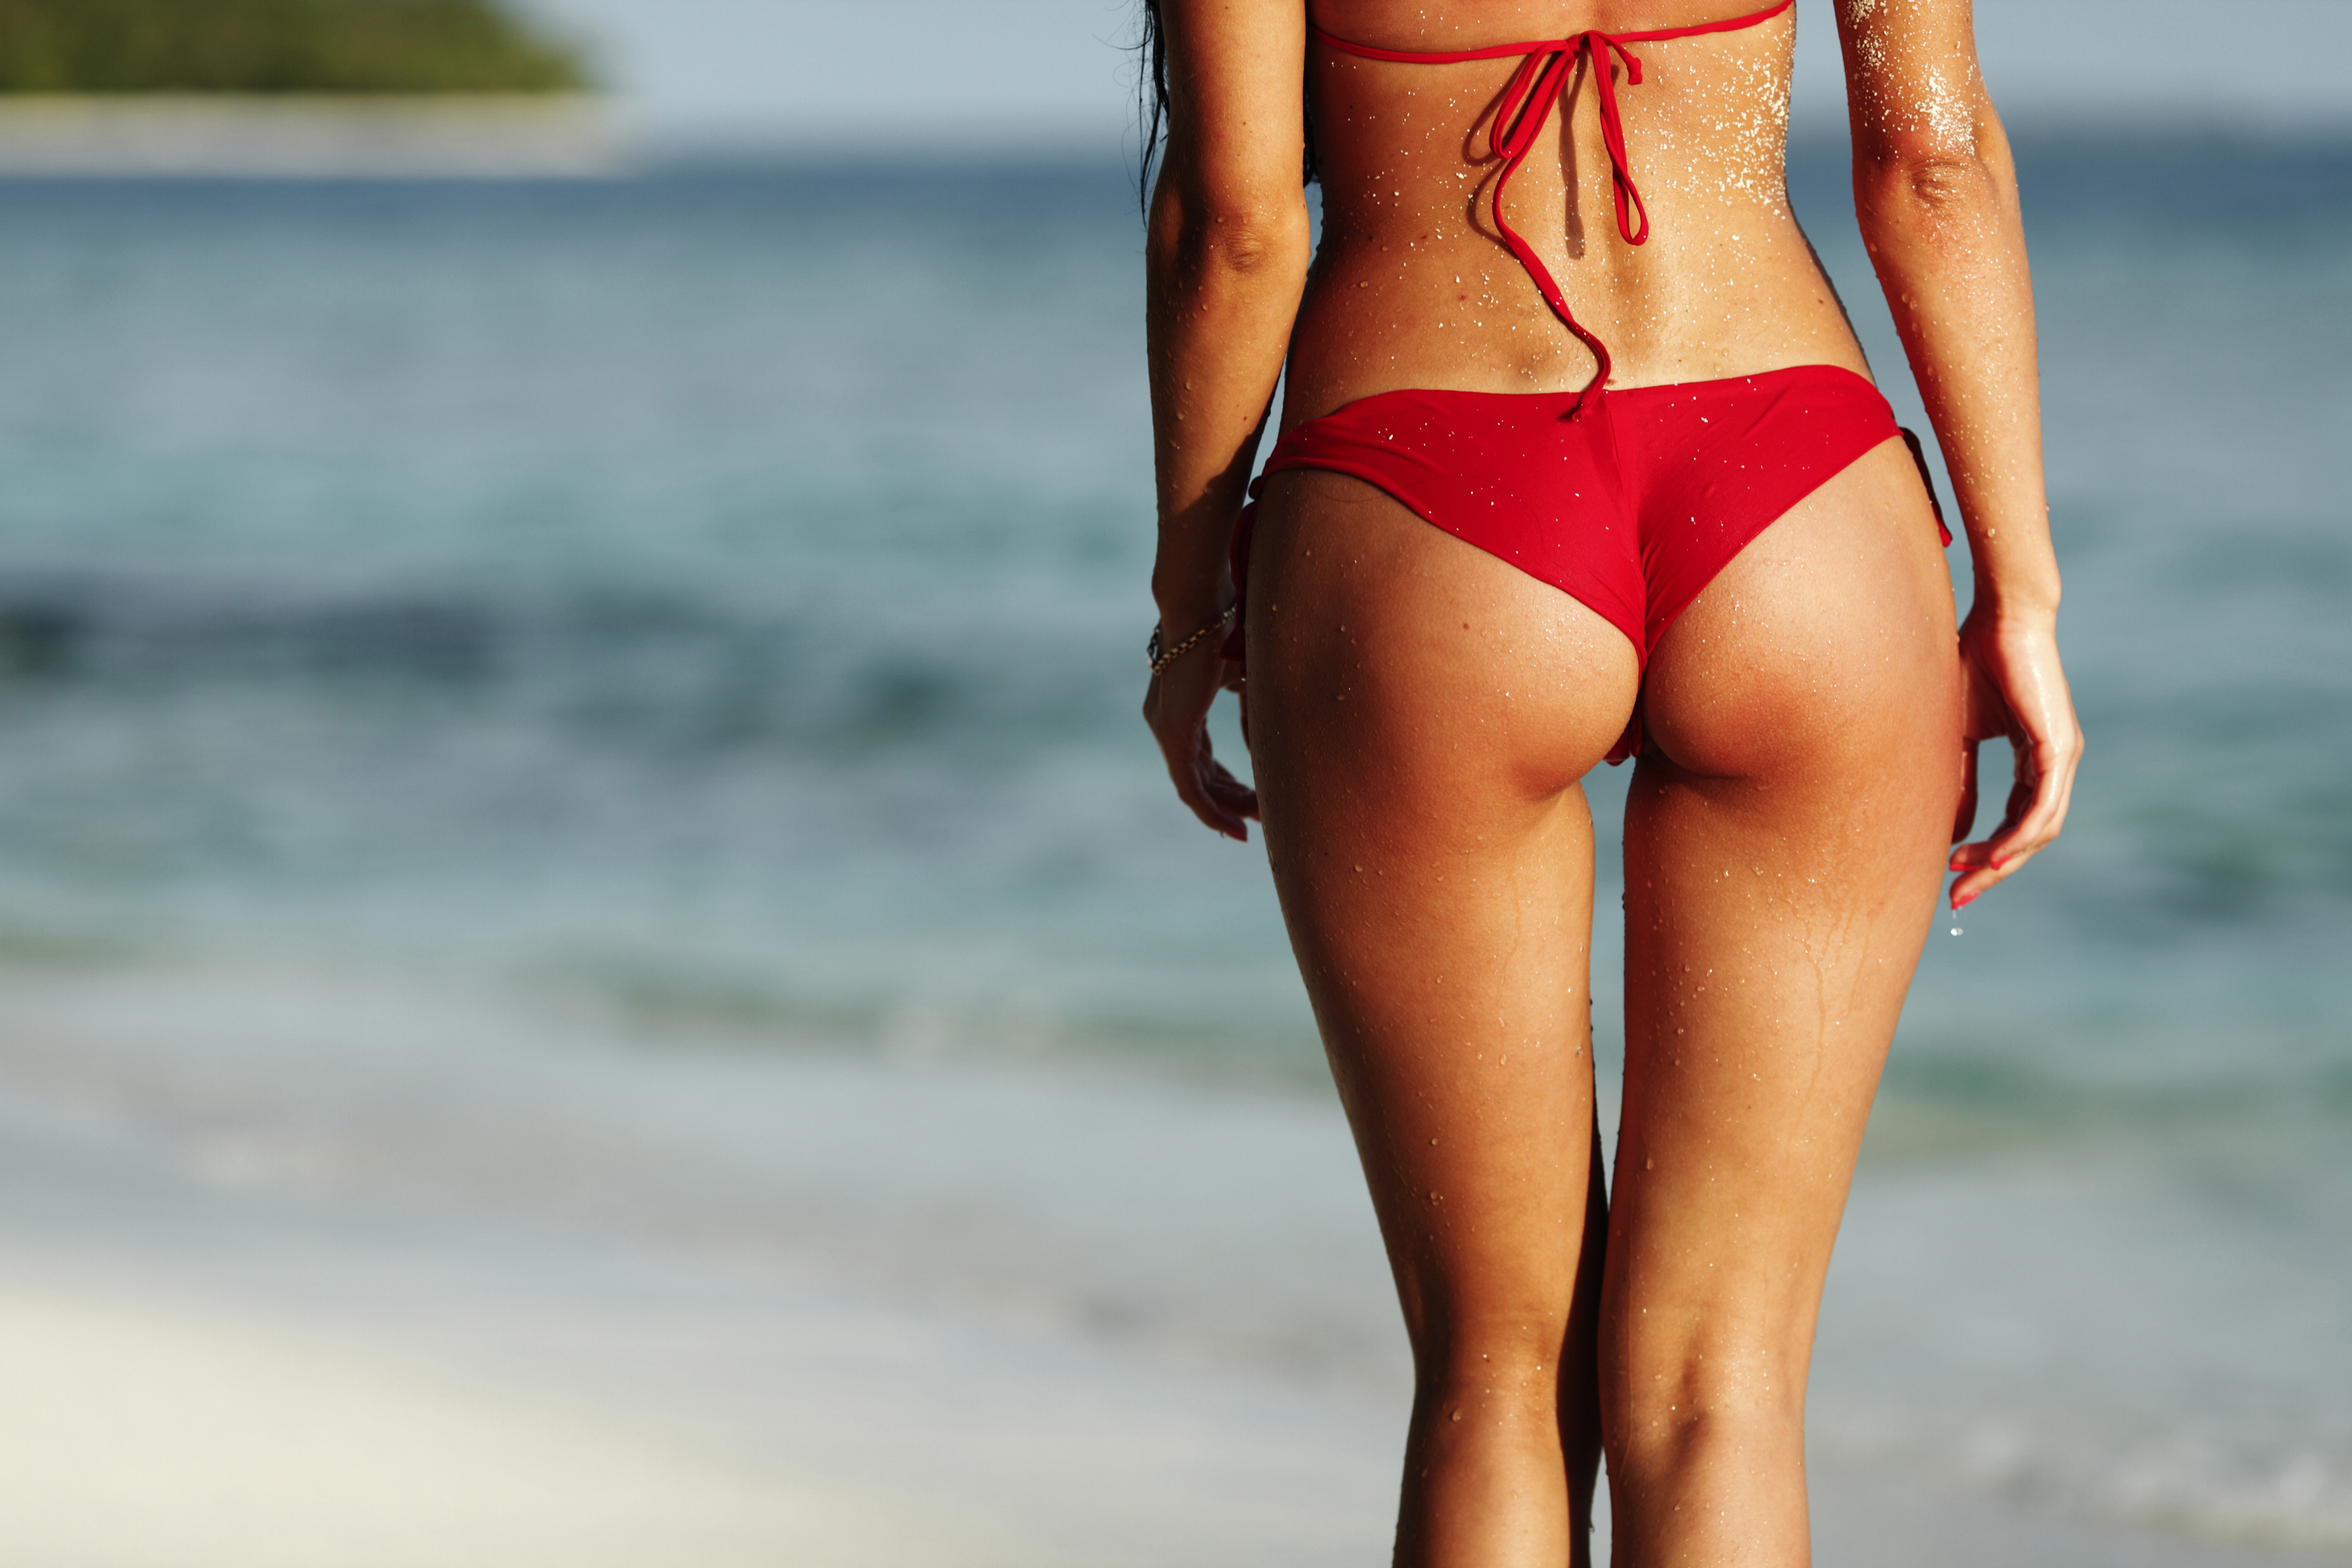 Is liposuction good for cellulite?